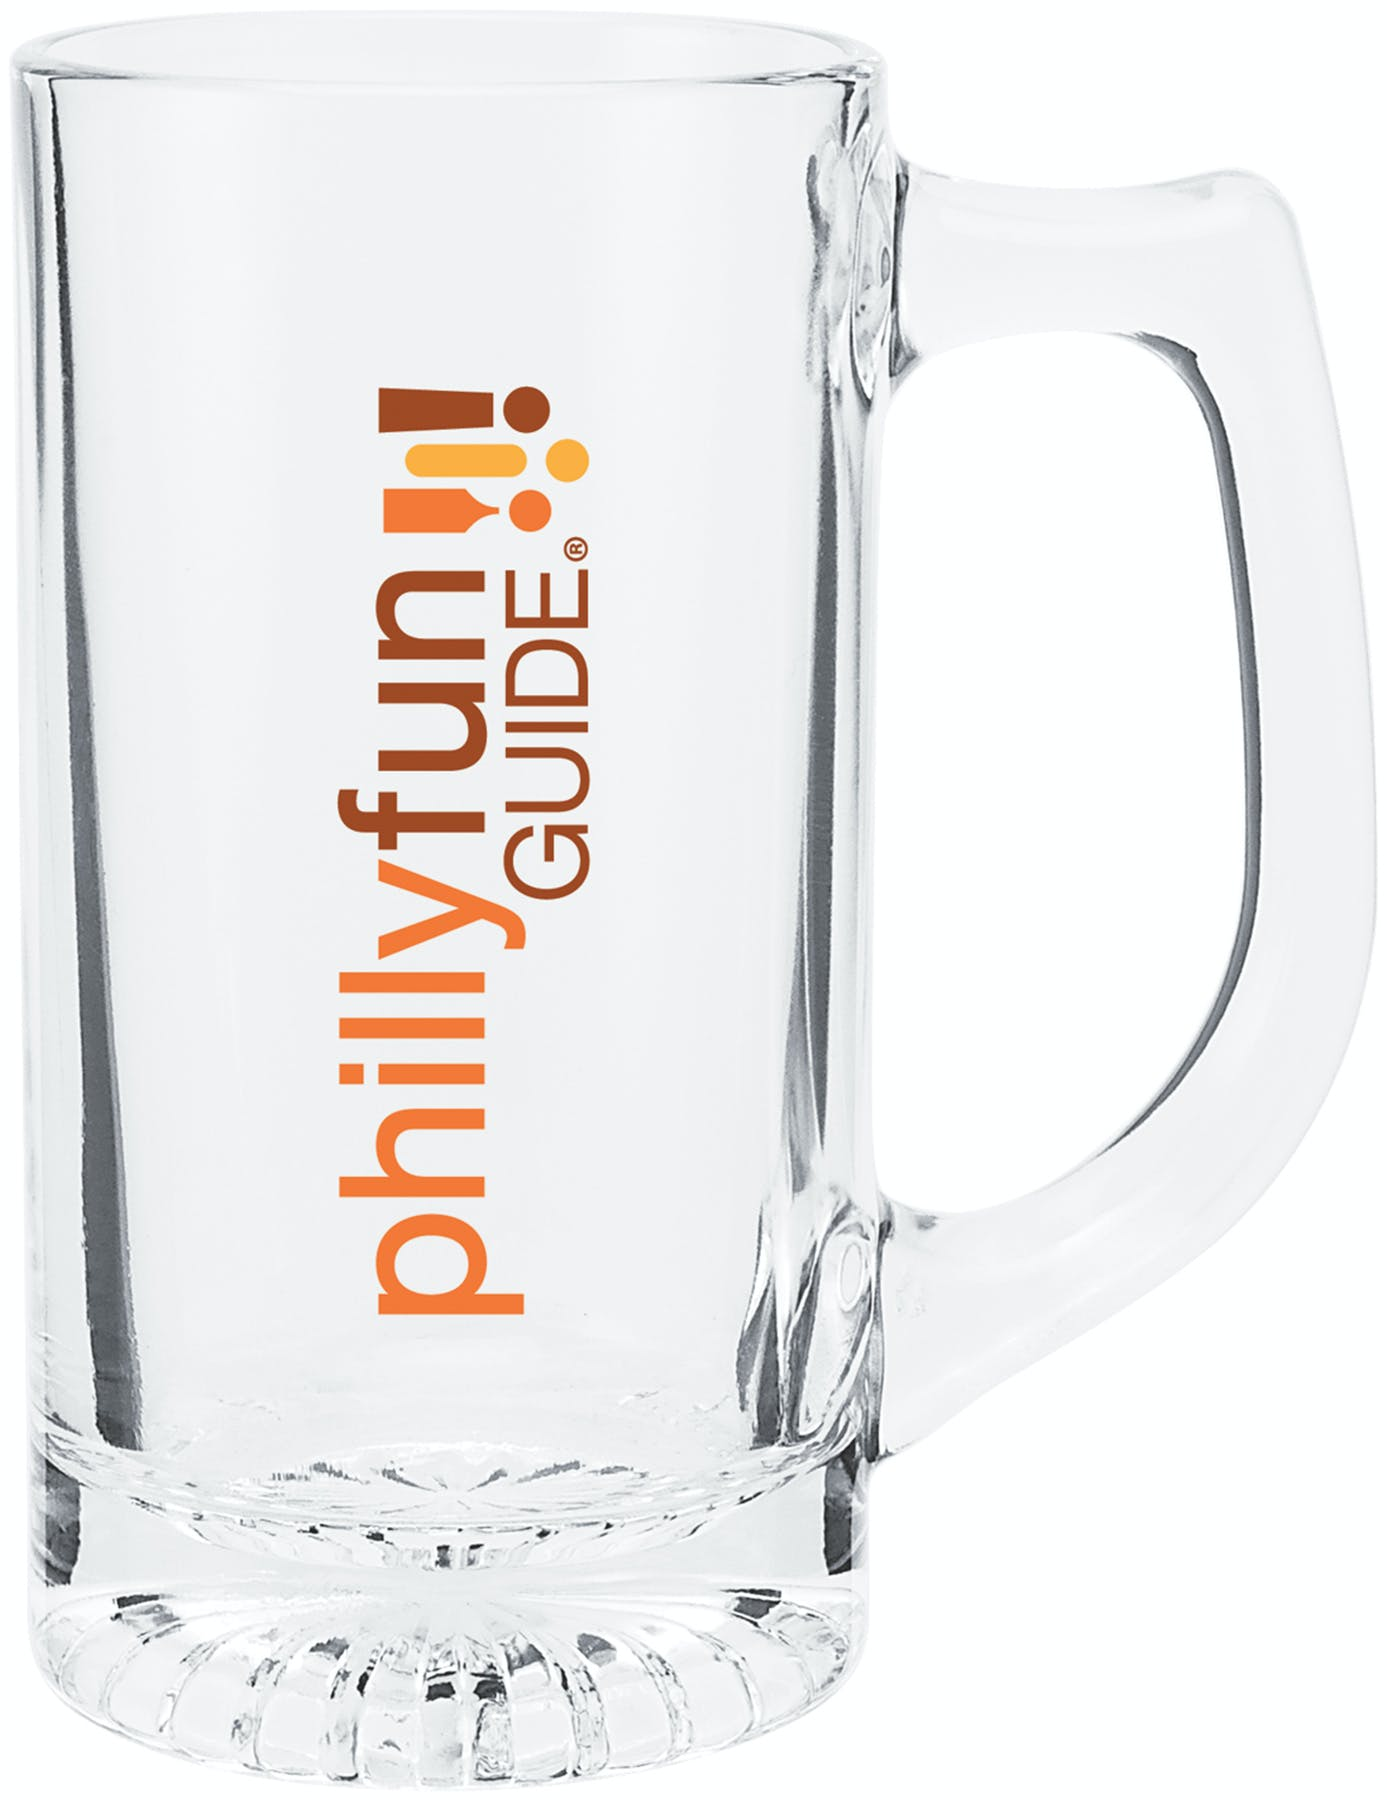 13 Oz. Glass Mug (Item # LBJJN-HLYGY) Glass mug sold by InkEasy